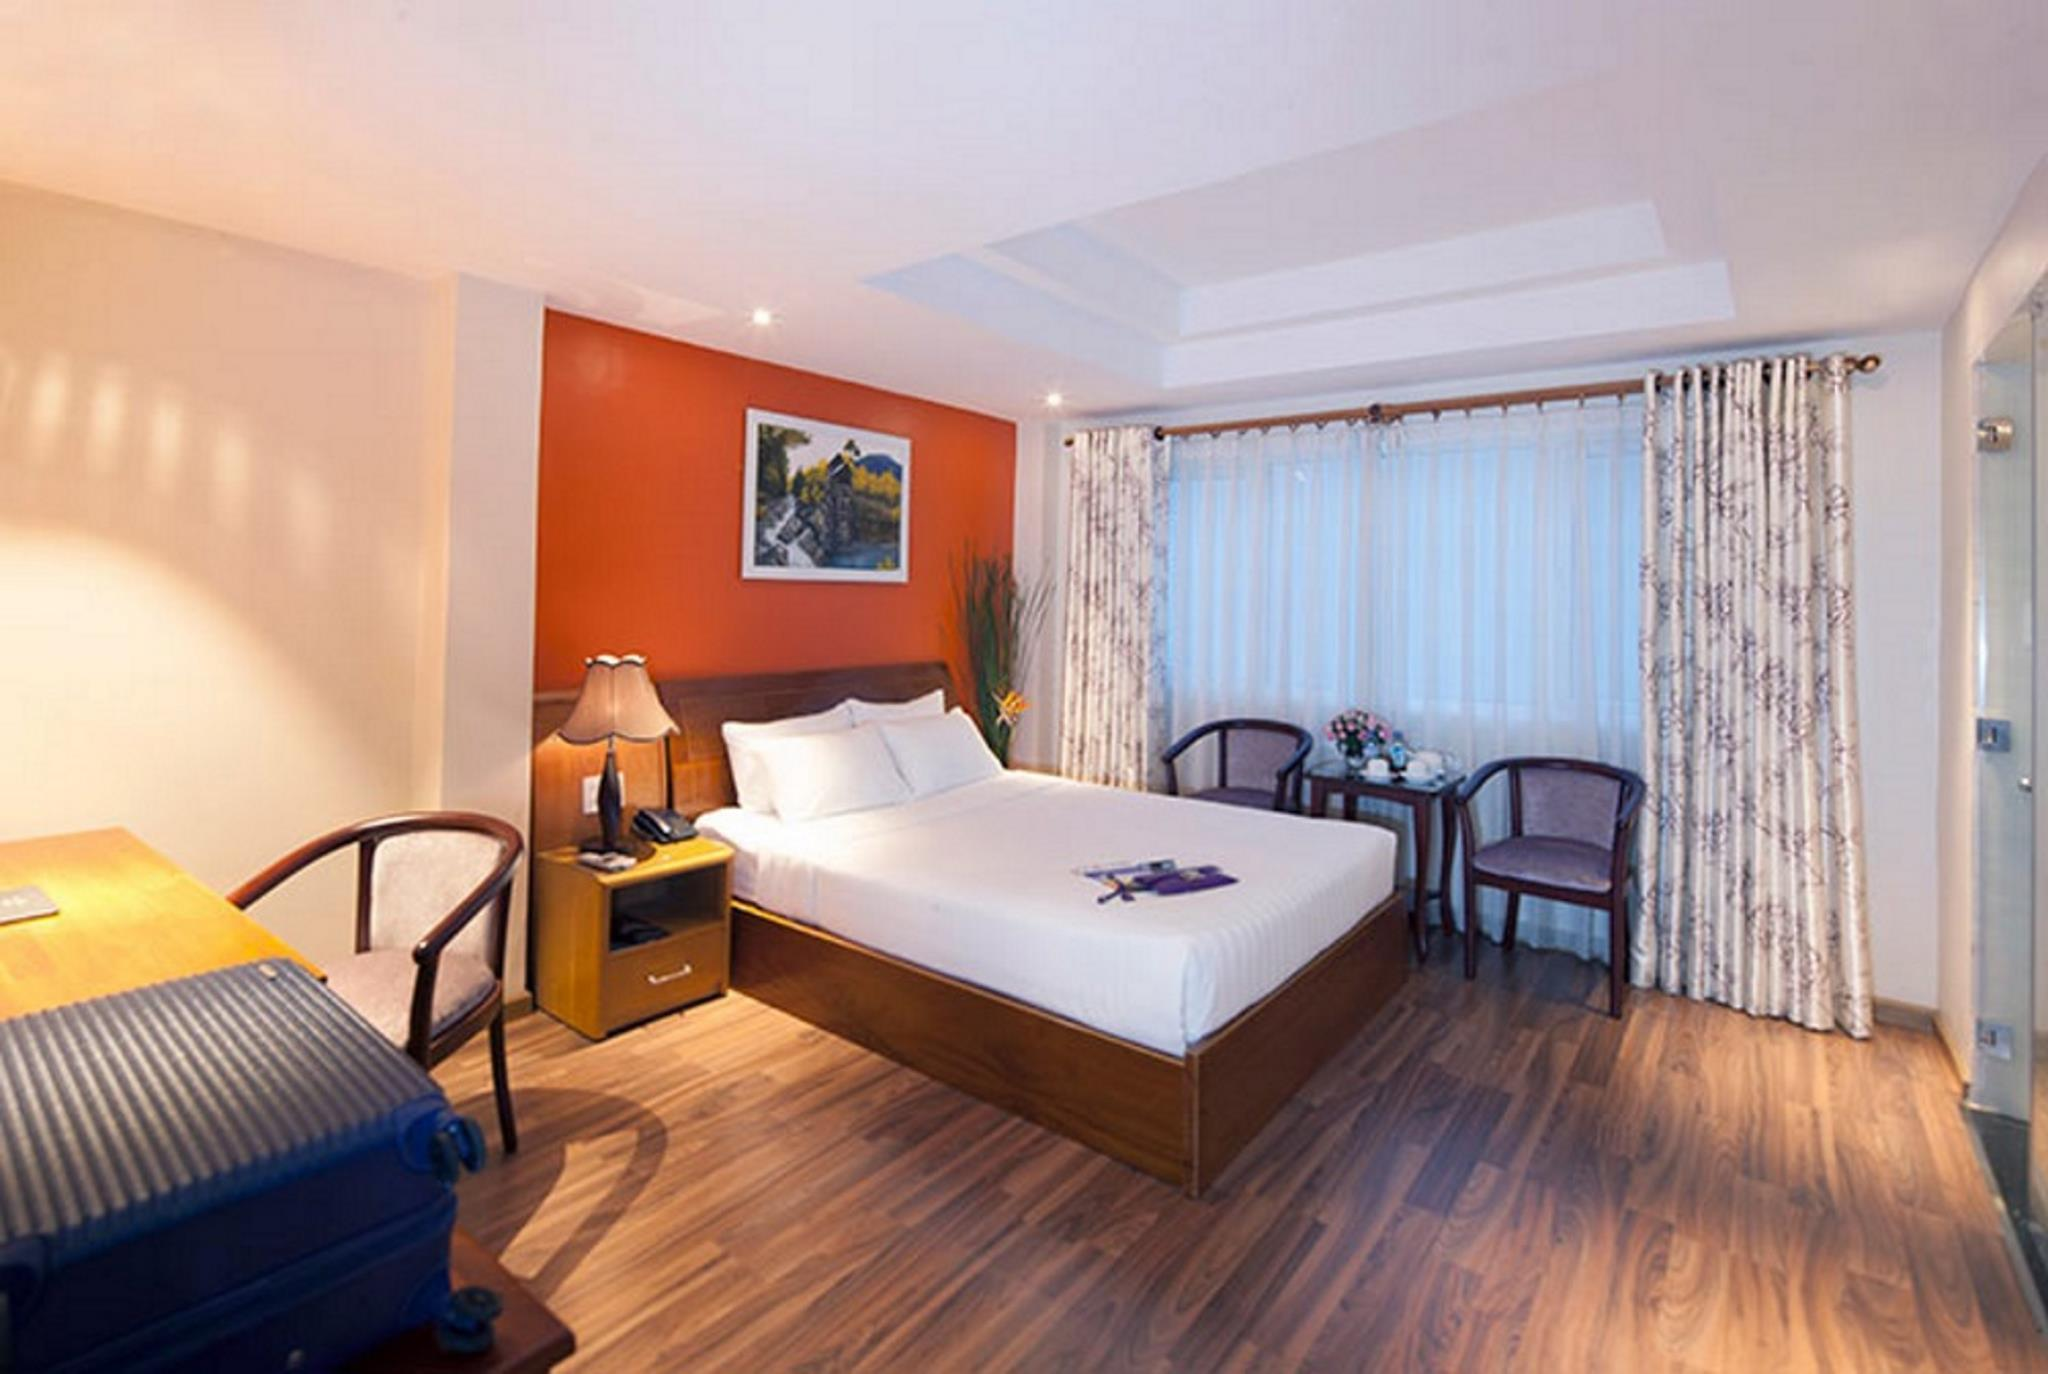 Deluxe cao cấp giường đôi hoặc 2 giường (Premium Deluxe Double or Twin)